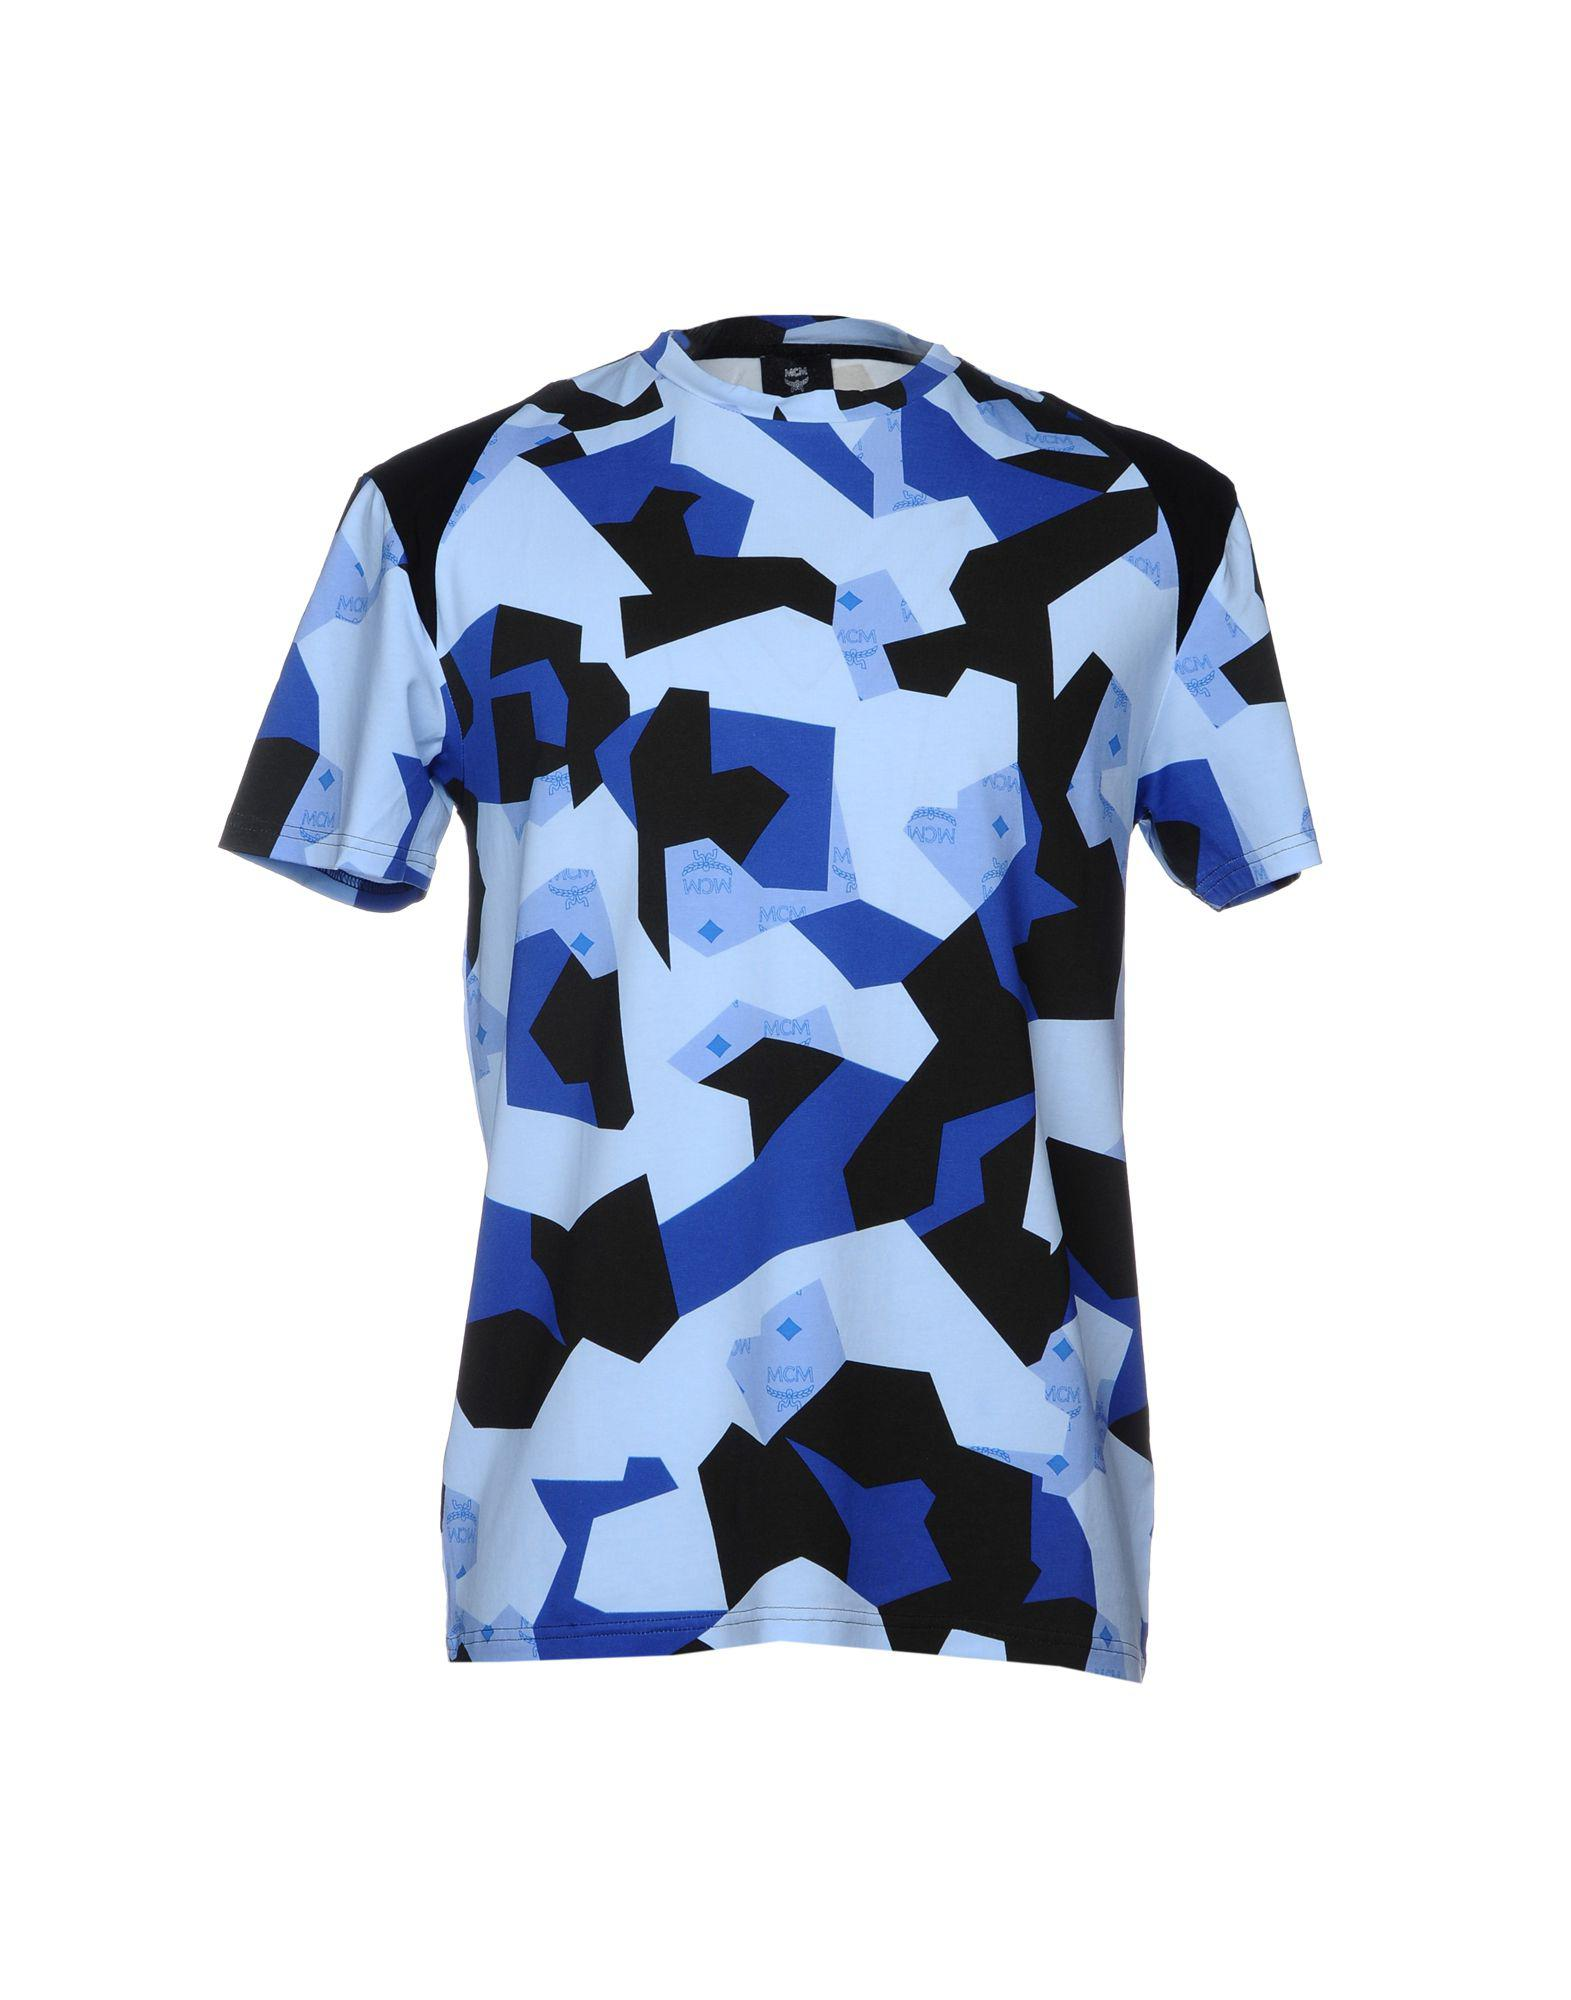 402f1a1bf MCM - Blue T-shirt for Men - Lyst. View fullscreen